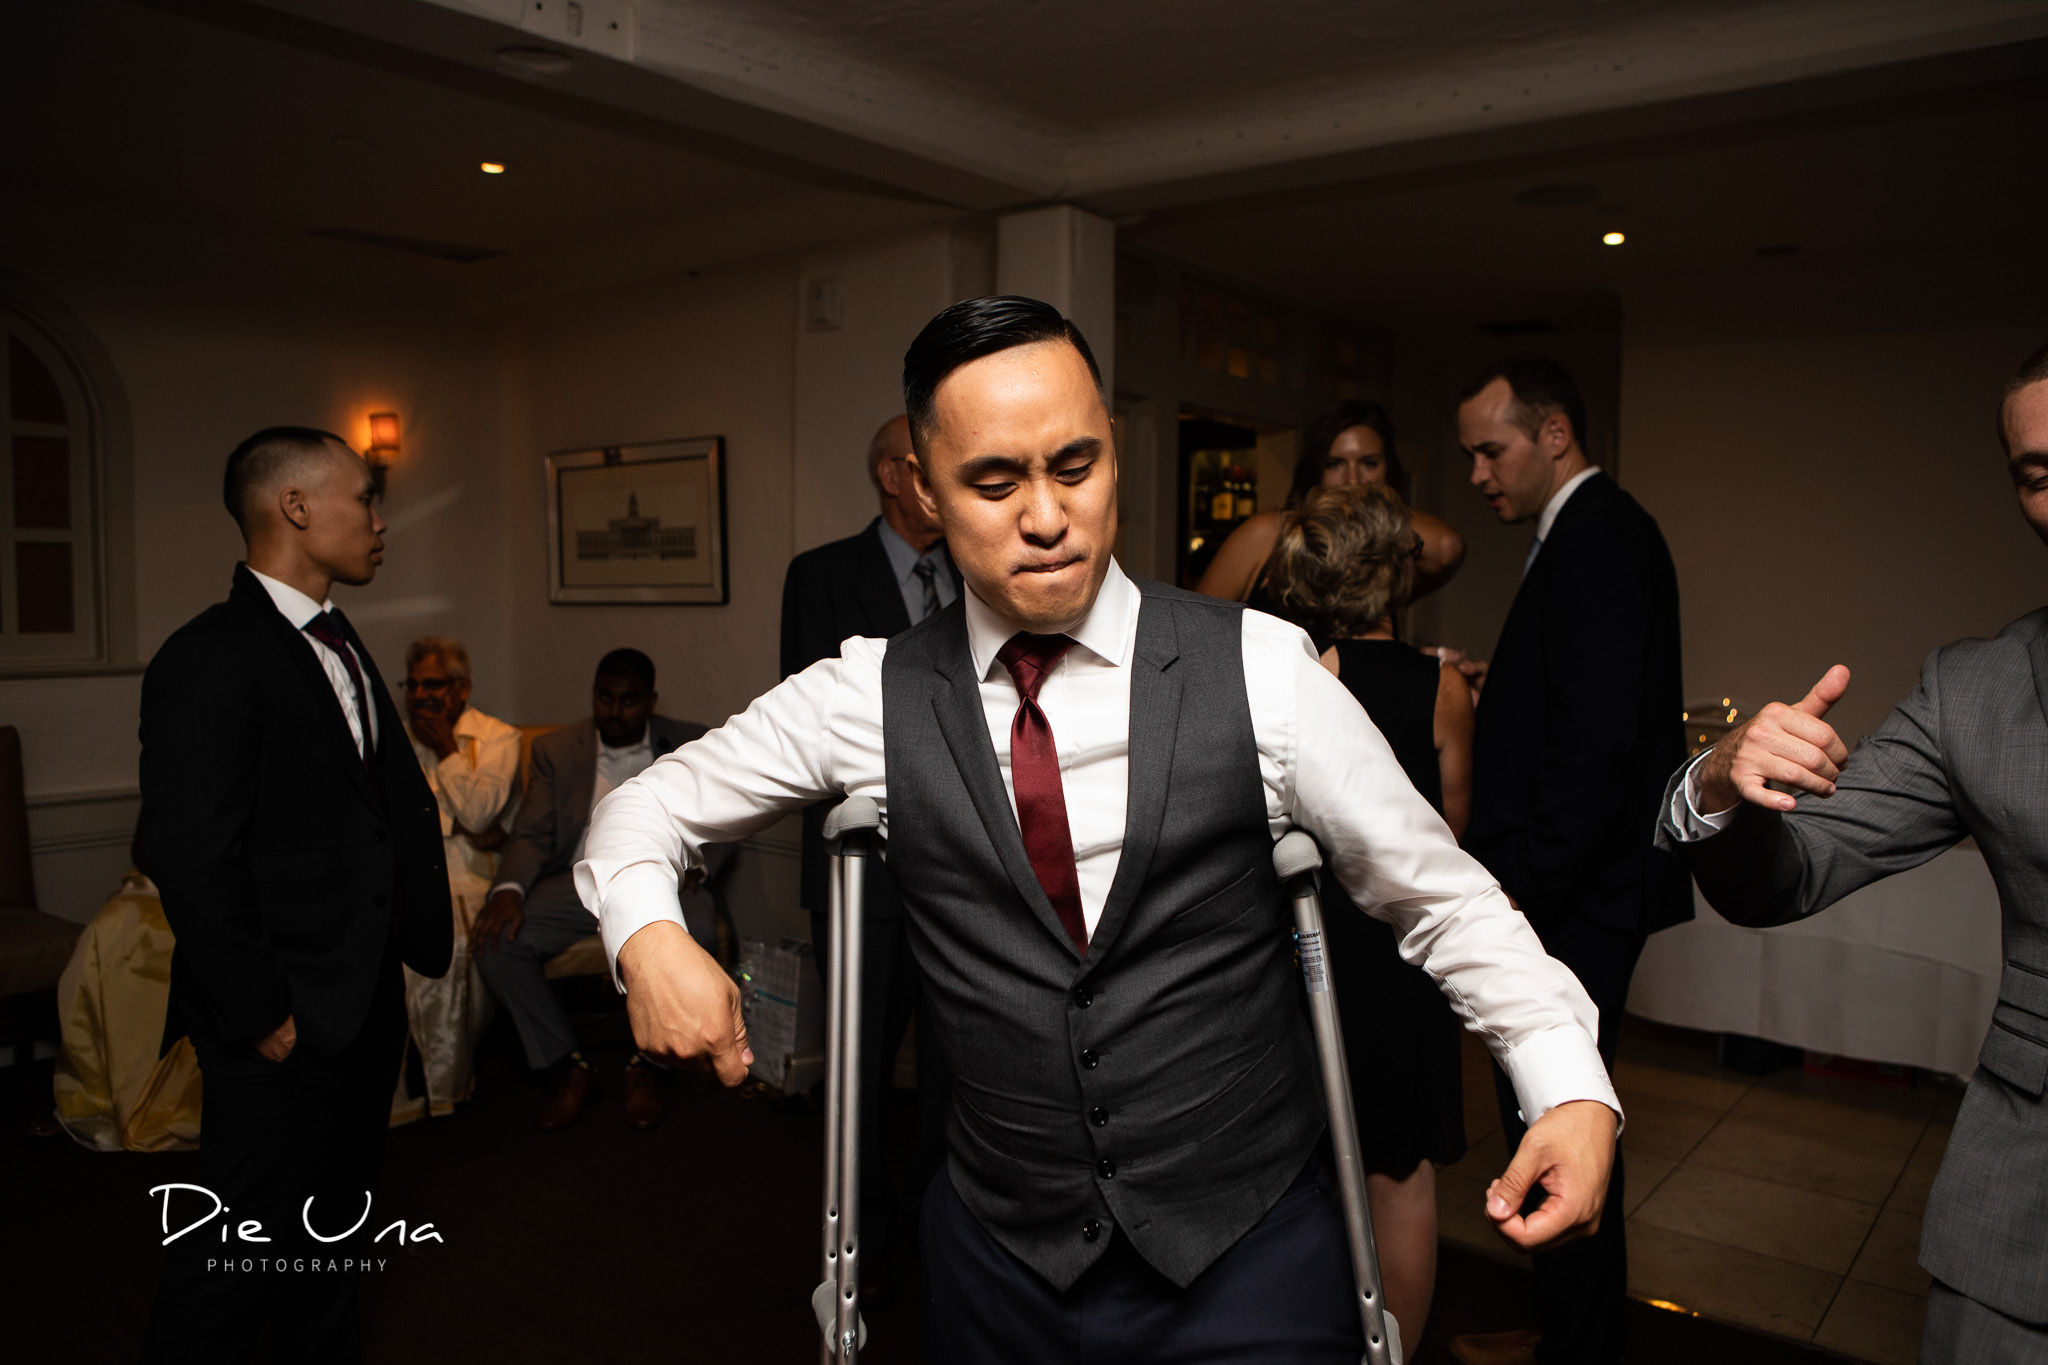 groom dancing during reception with crutches during wedding reception.jpg